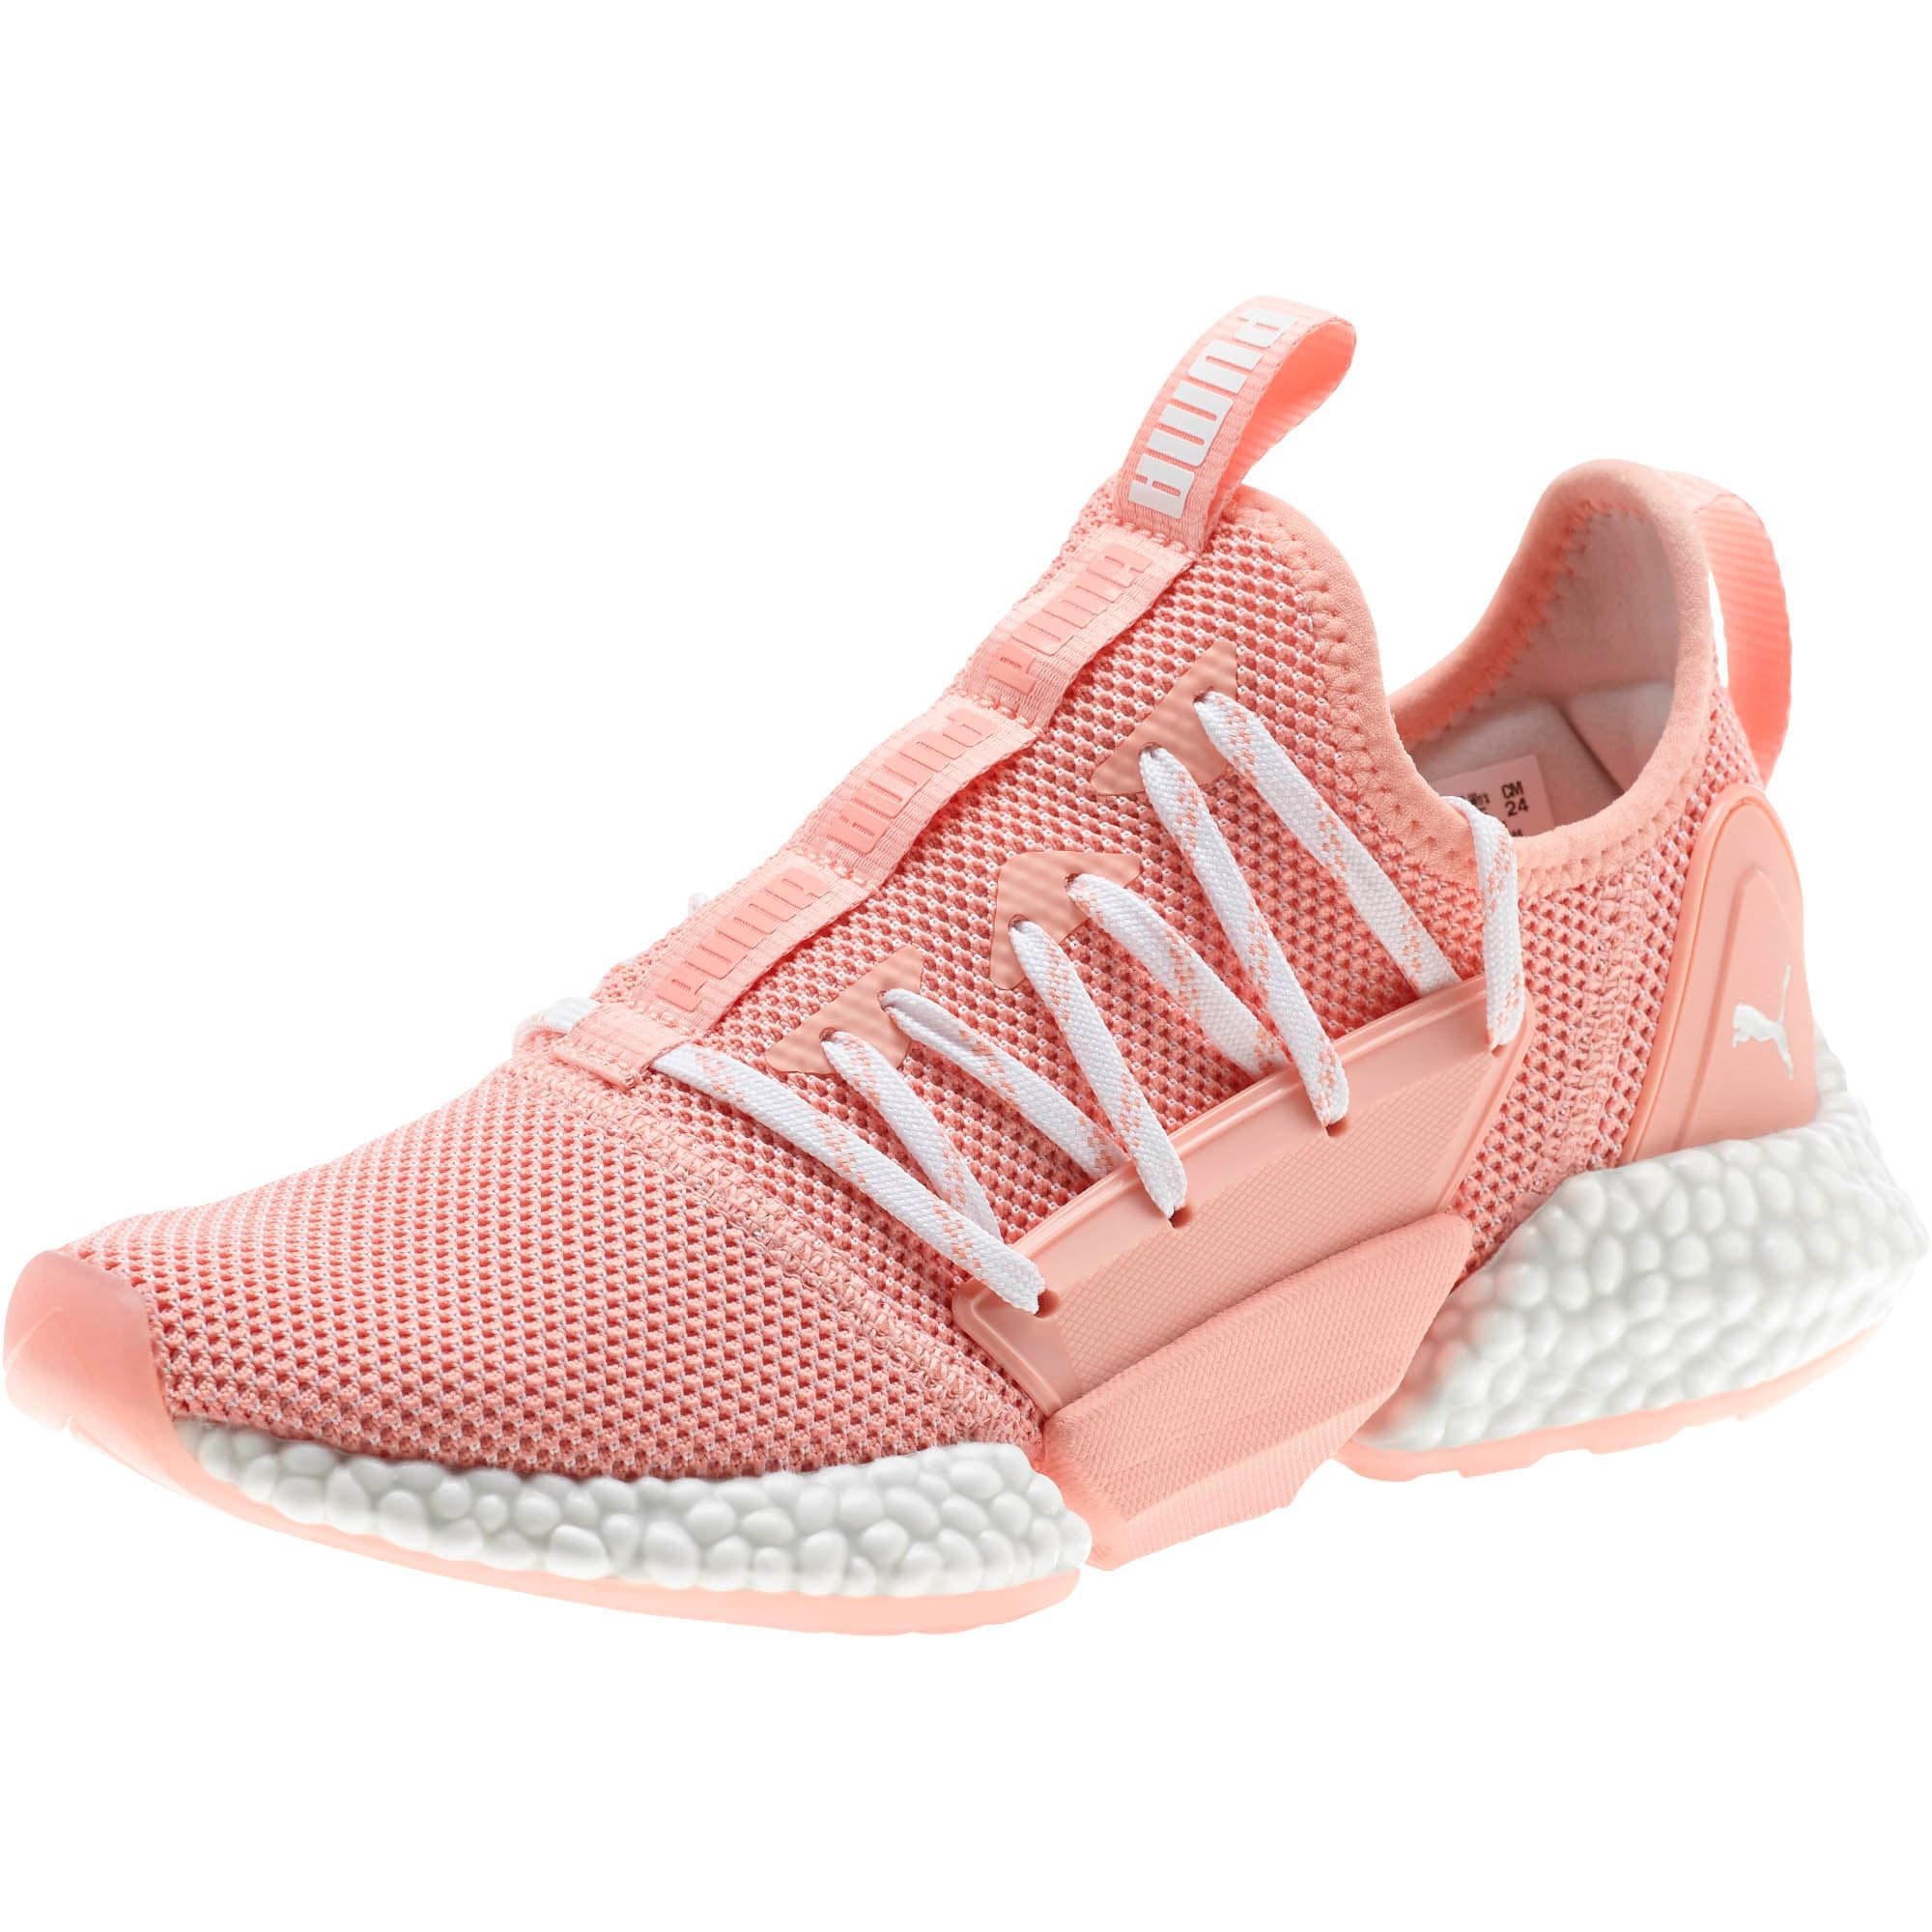 Thumbnail 1 of HYBRID Rocket Runner Women's Running Shoes, Peach Bud-Puma White, medium